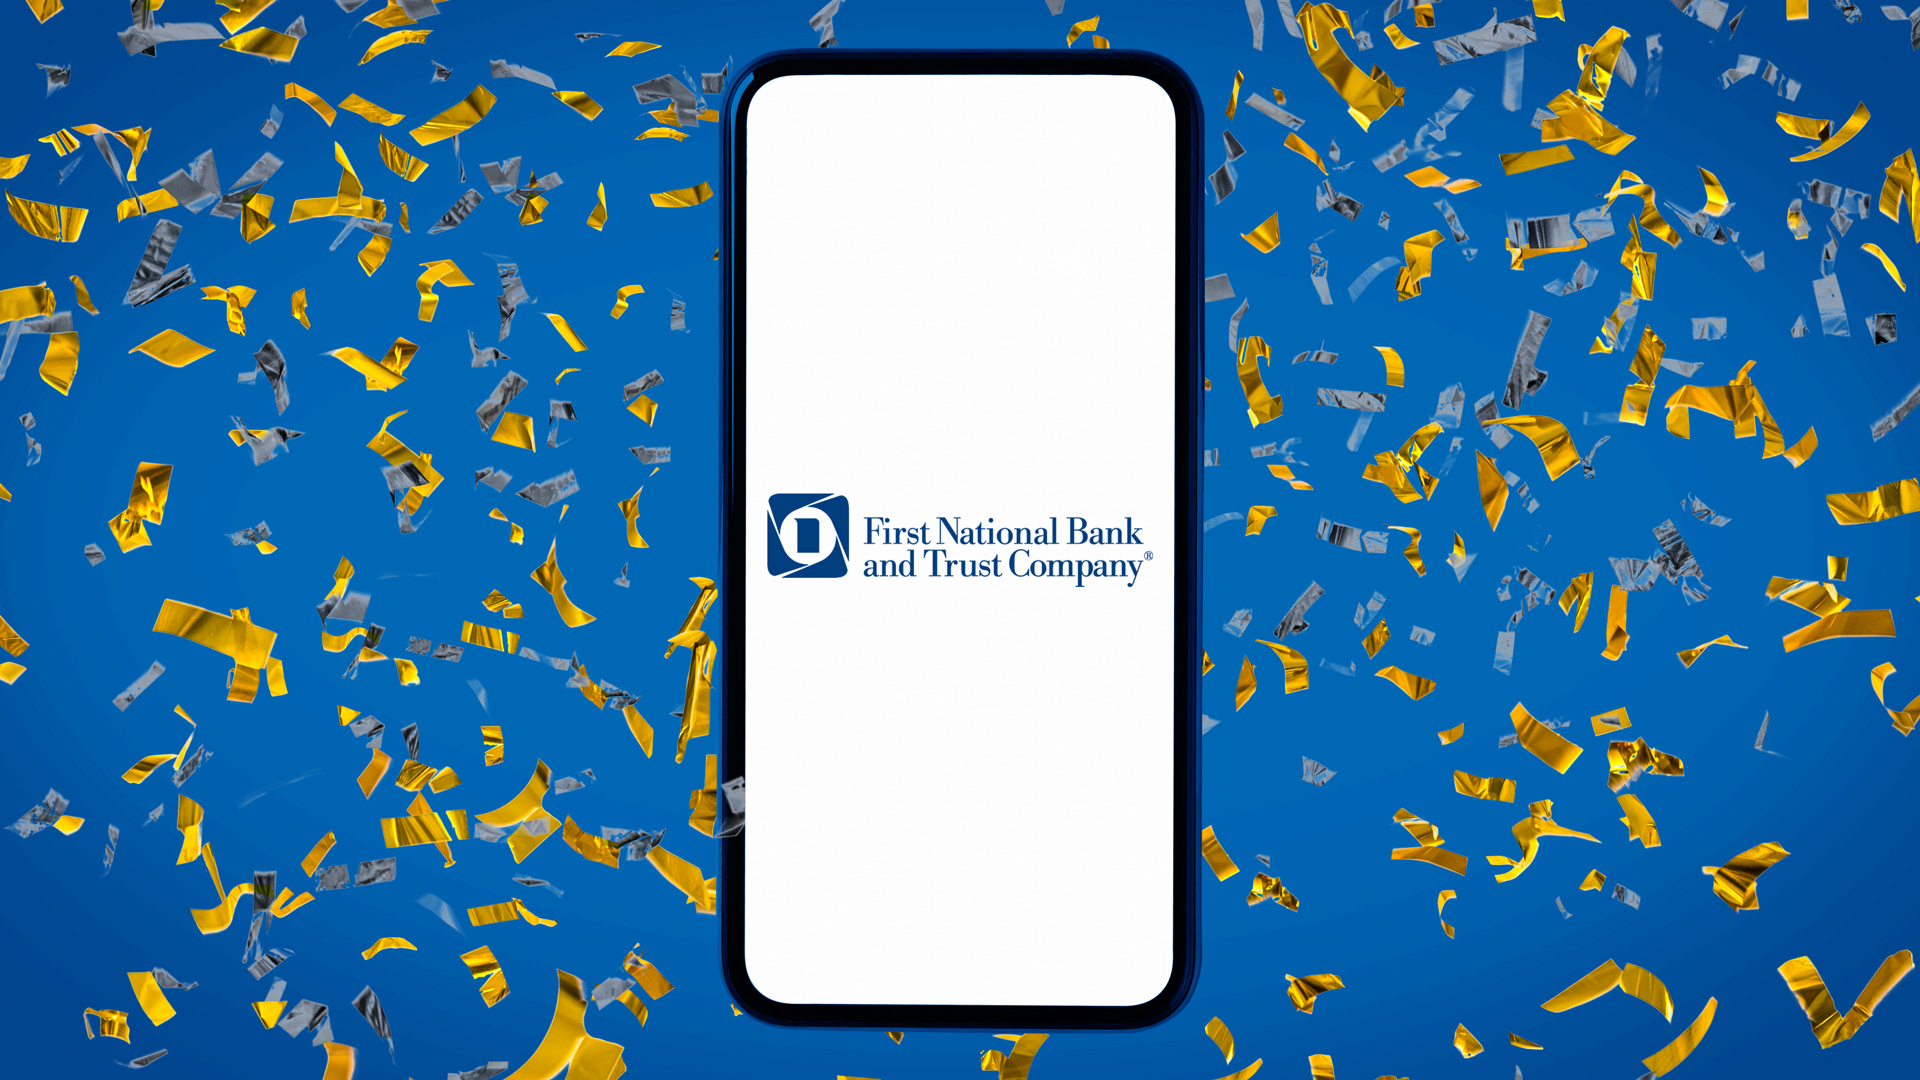 First National Bank and Trust Company promotions